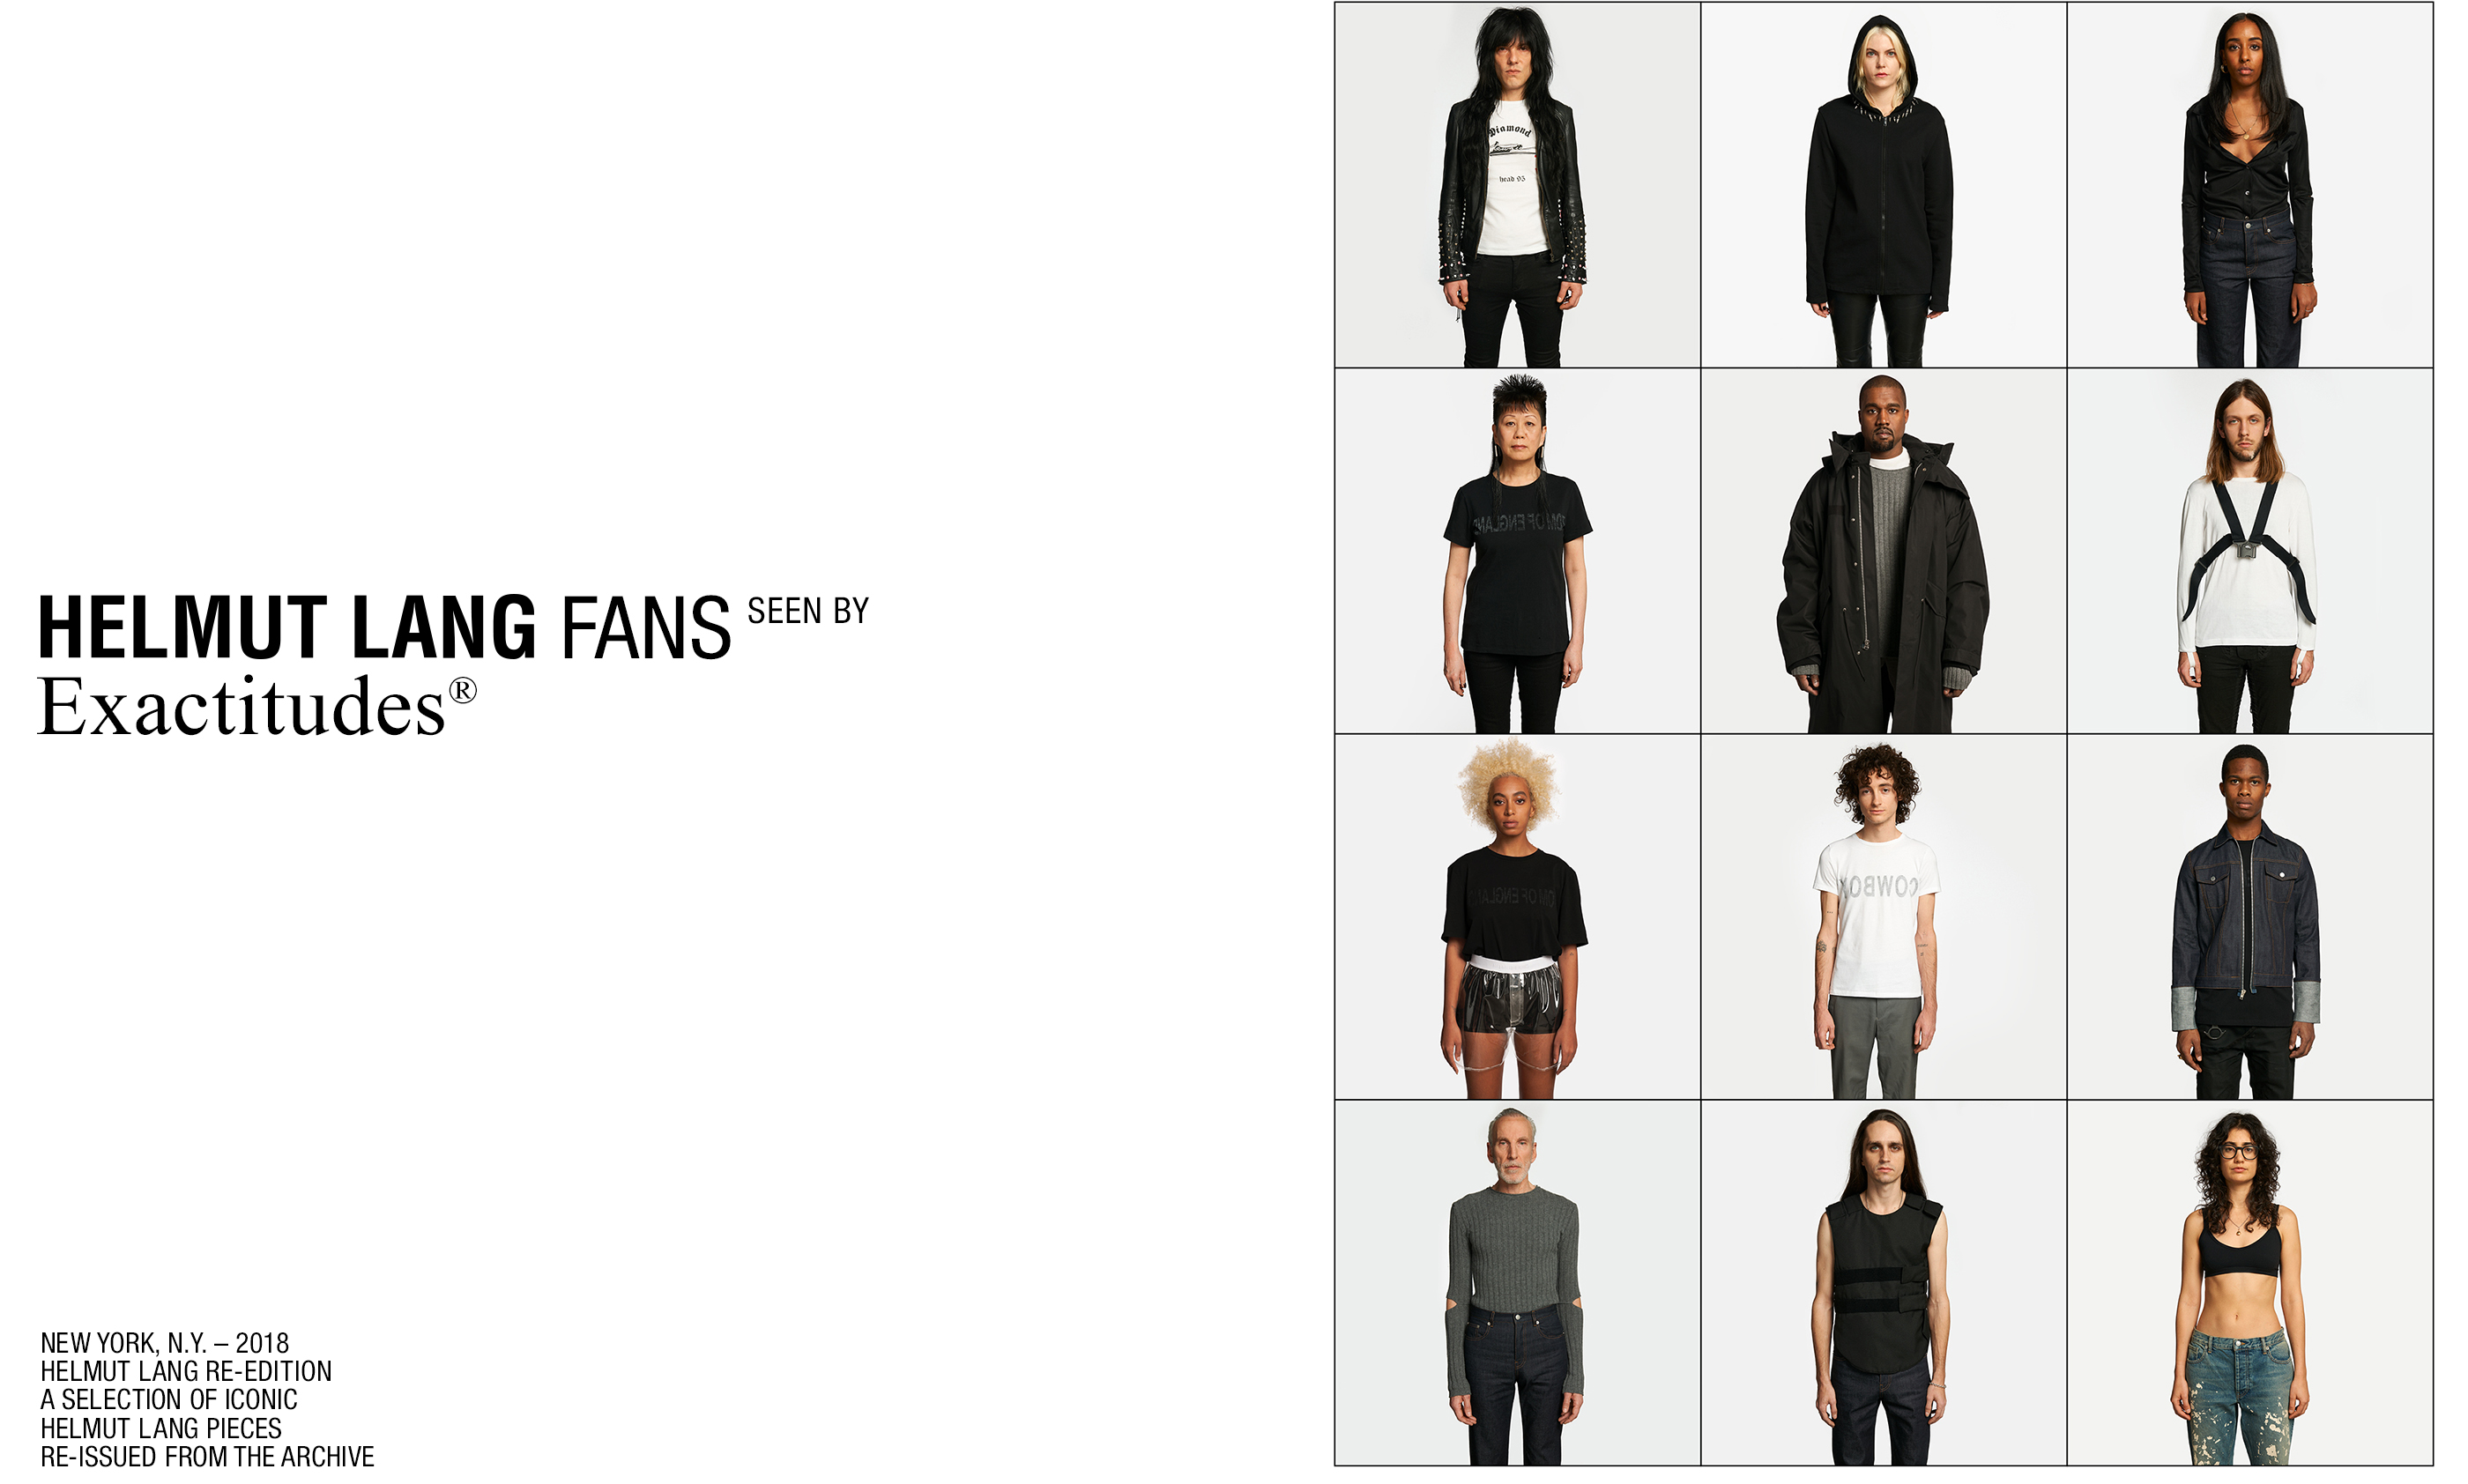 c3db4a1fdb771 HELMUT LANG - Shop clothing, fragrance, shoes, and accessories for women  and men